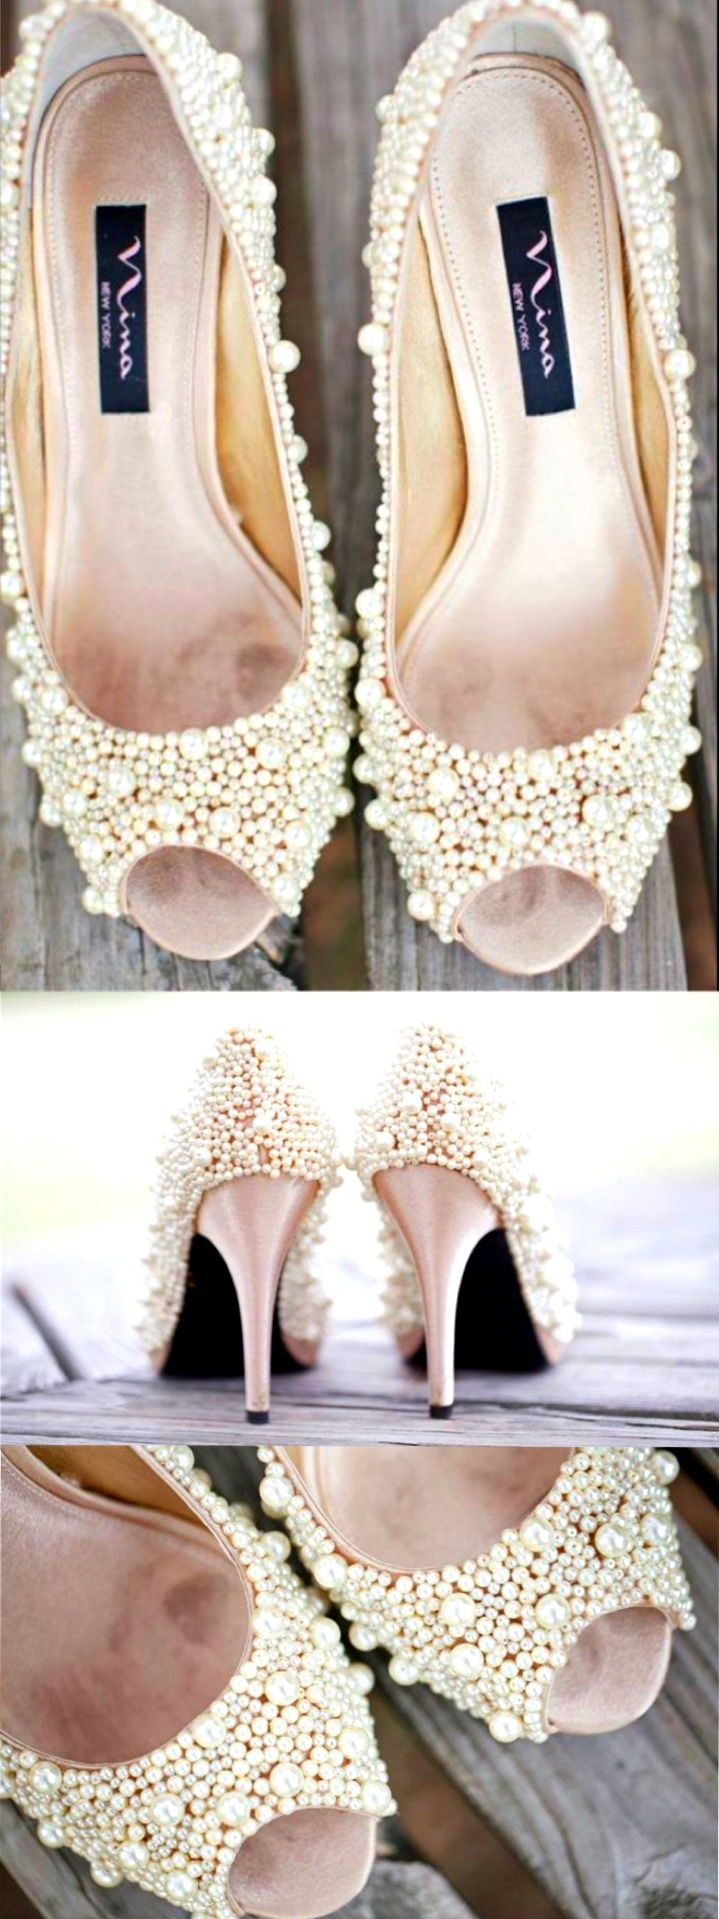 Encontrado en weddingsbyhoneybee.com